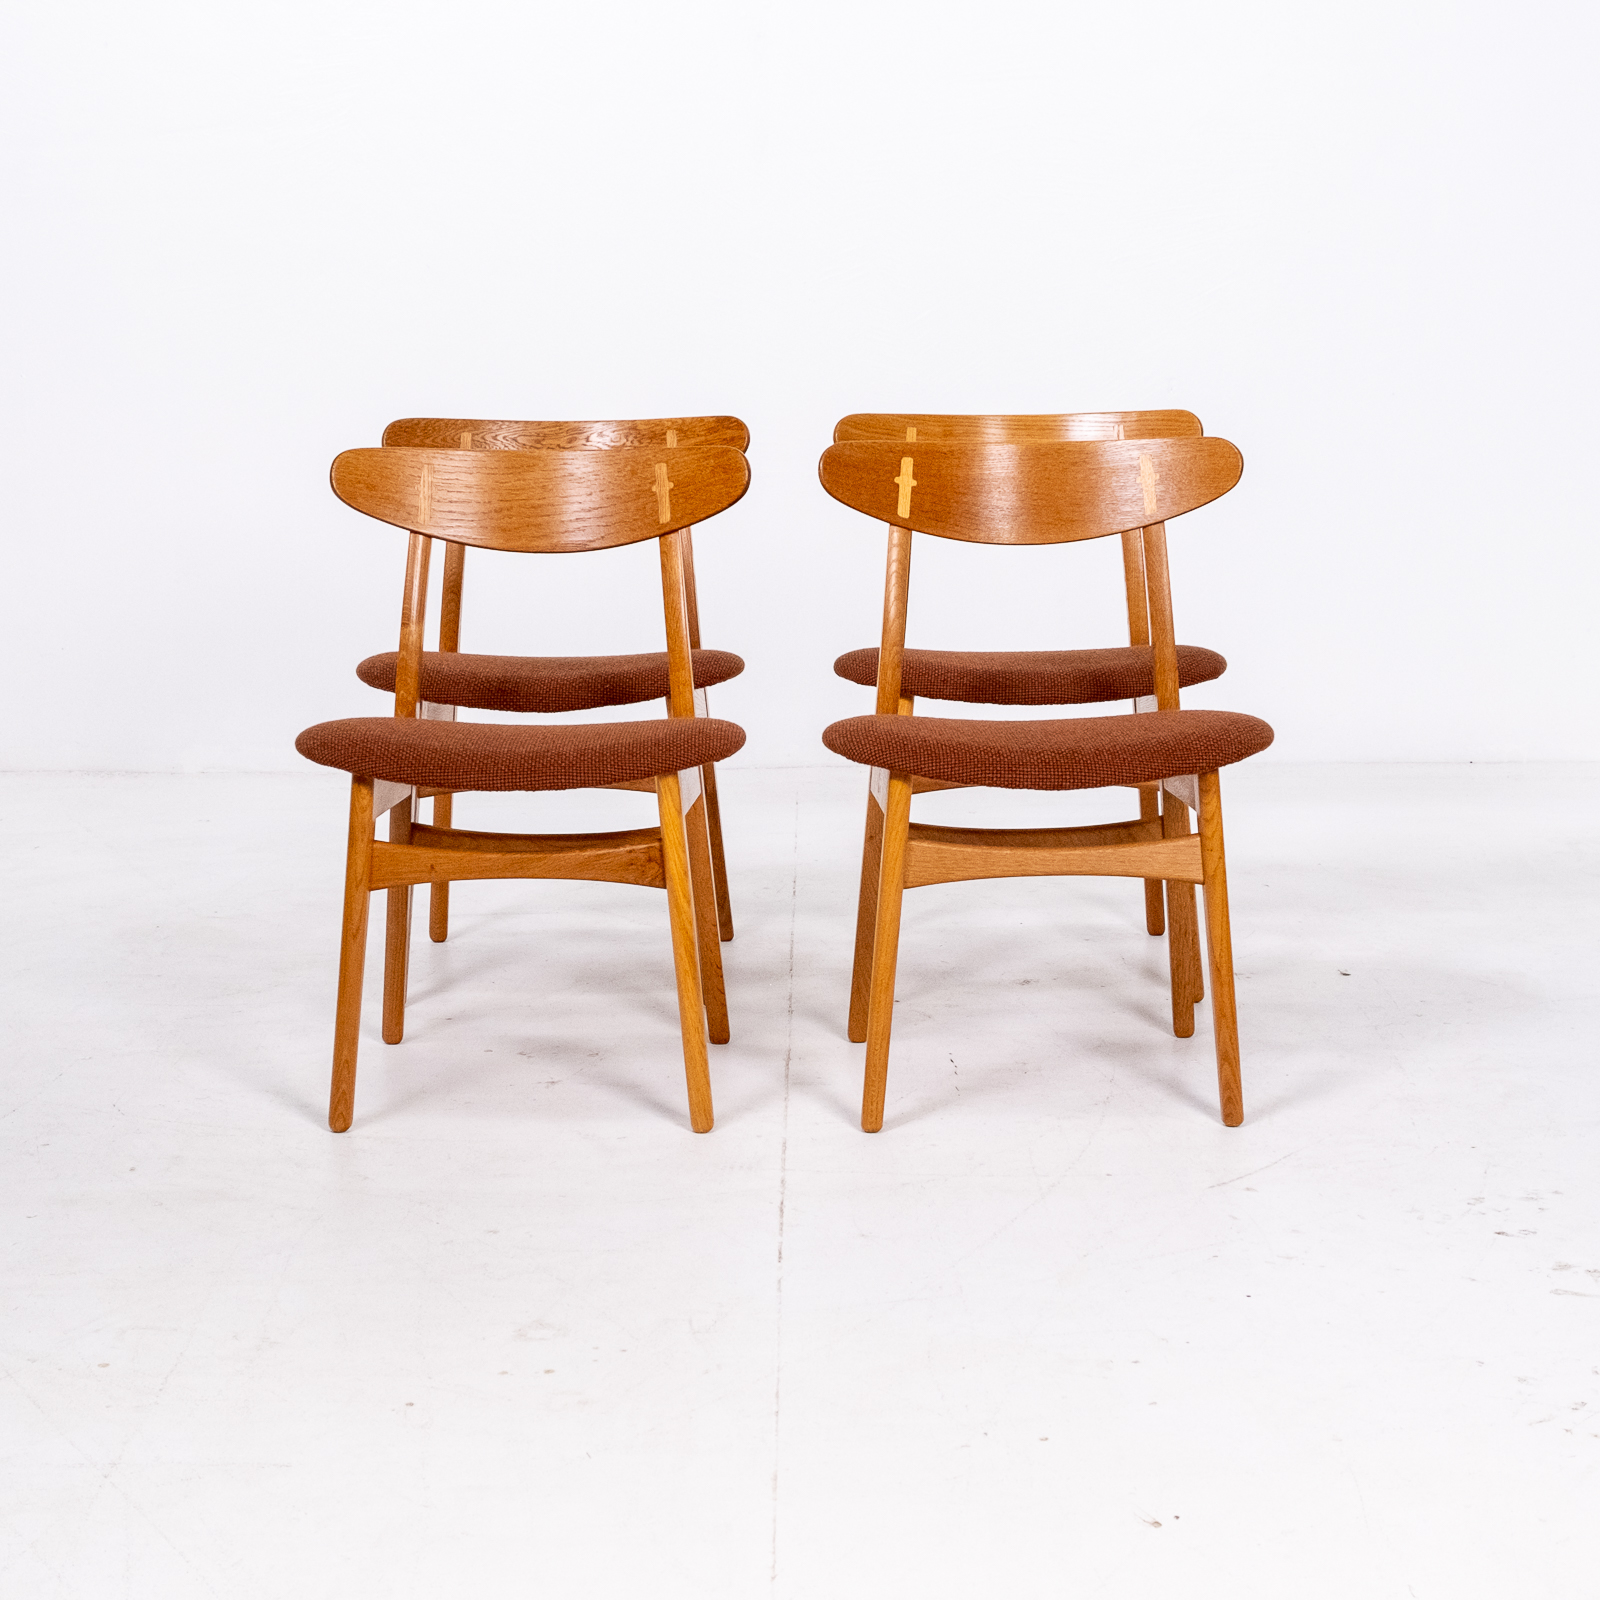 Set Of 4 Ch 30 Dining Chairs By Hans Wegner For Carl Hansen And Son In Oak And Kvadart Upholstery, 1950s, Denmark 02